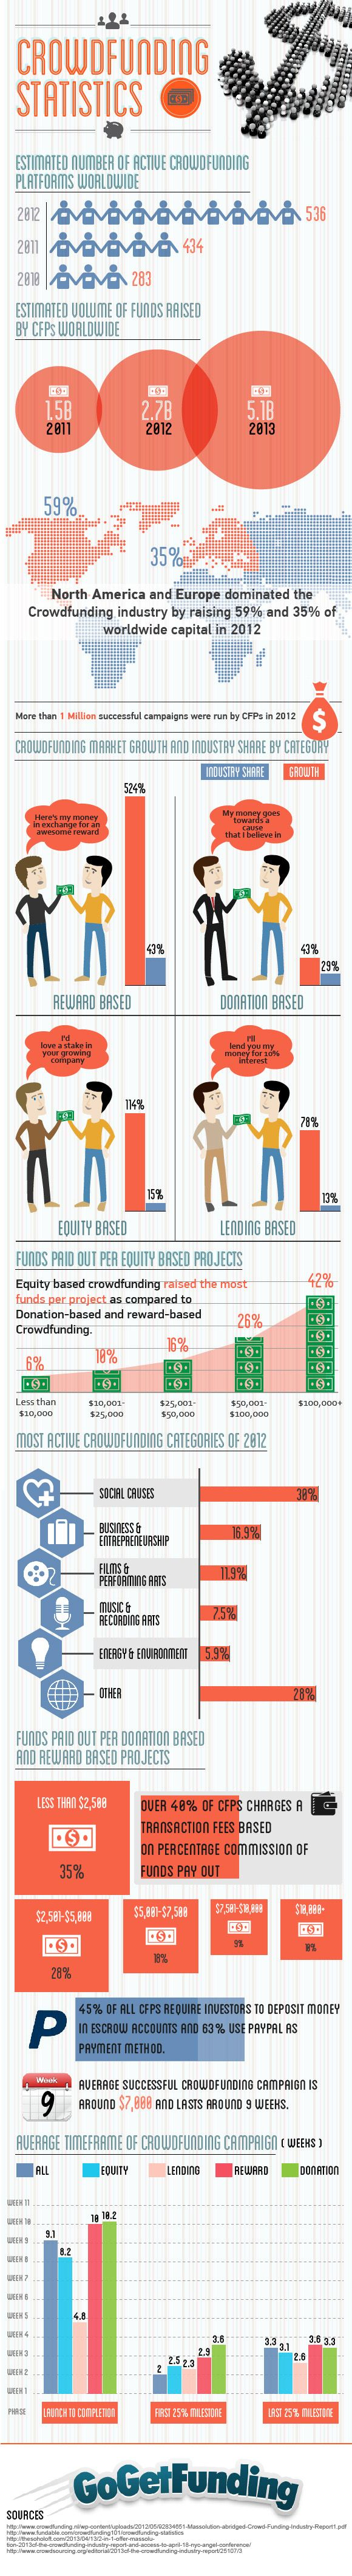 Crowdfunding industry trends and statistics... (Most of these are from the US, but you get the idea)